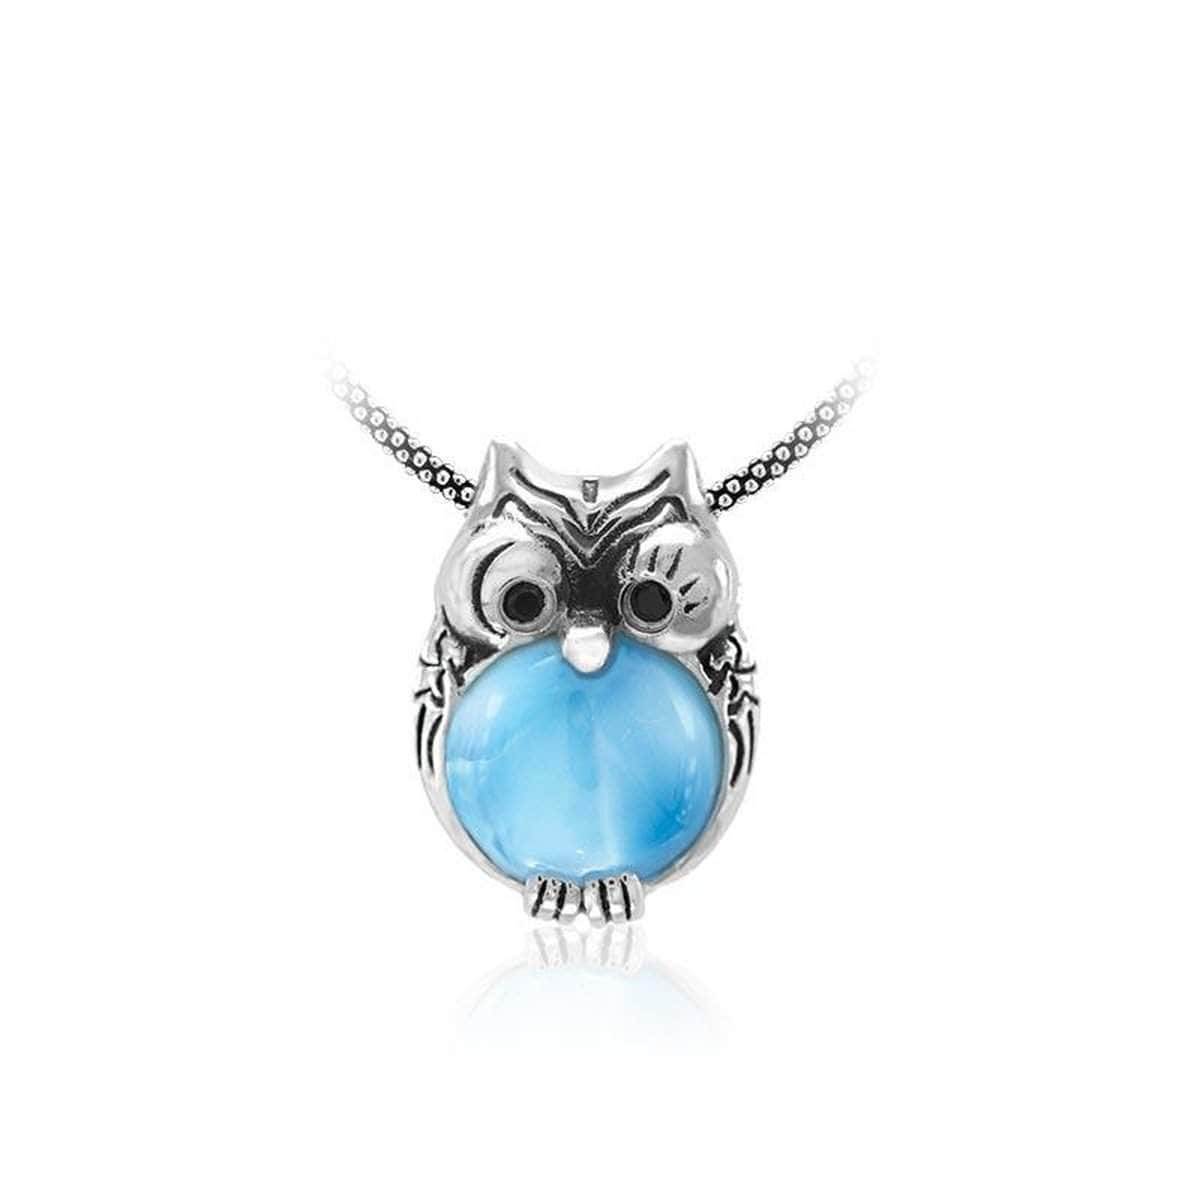 Owl Black Spinel Necklace - Nowl000-00-Marahlago Larimar-Renee Taylor Gallery